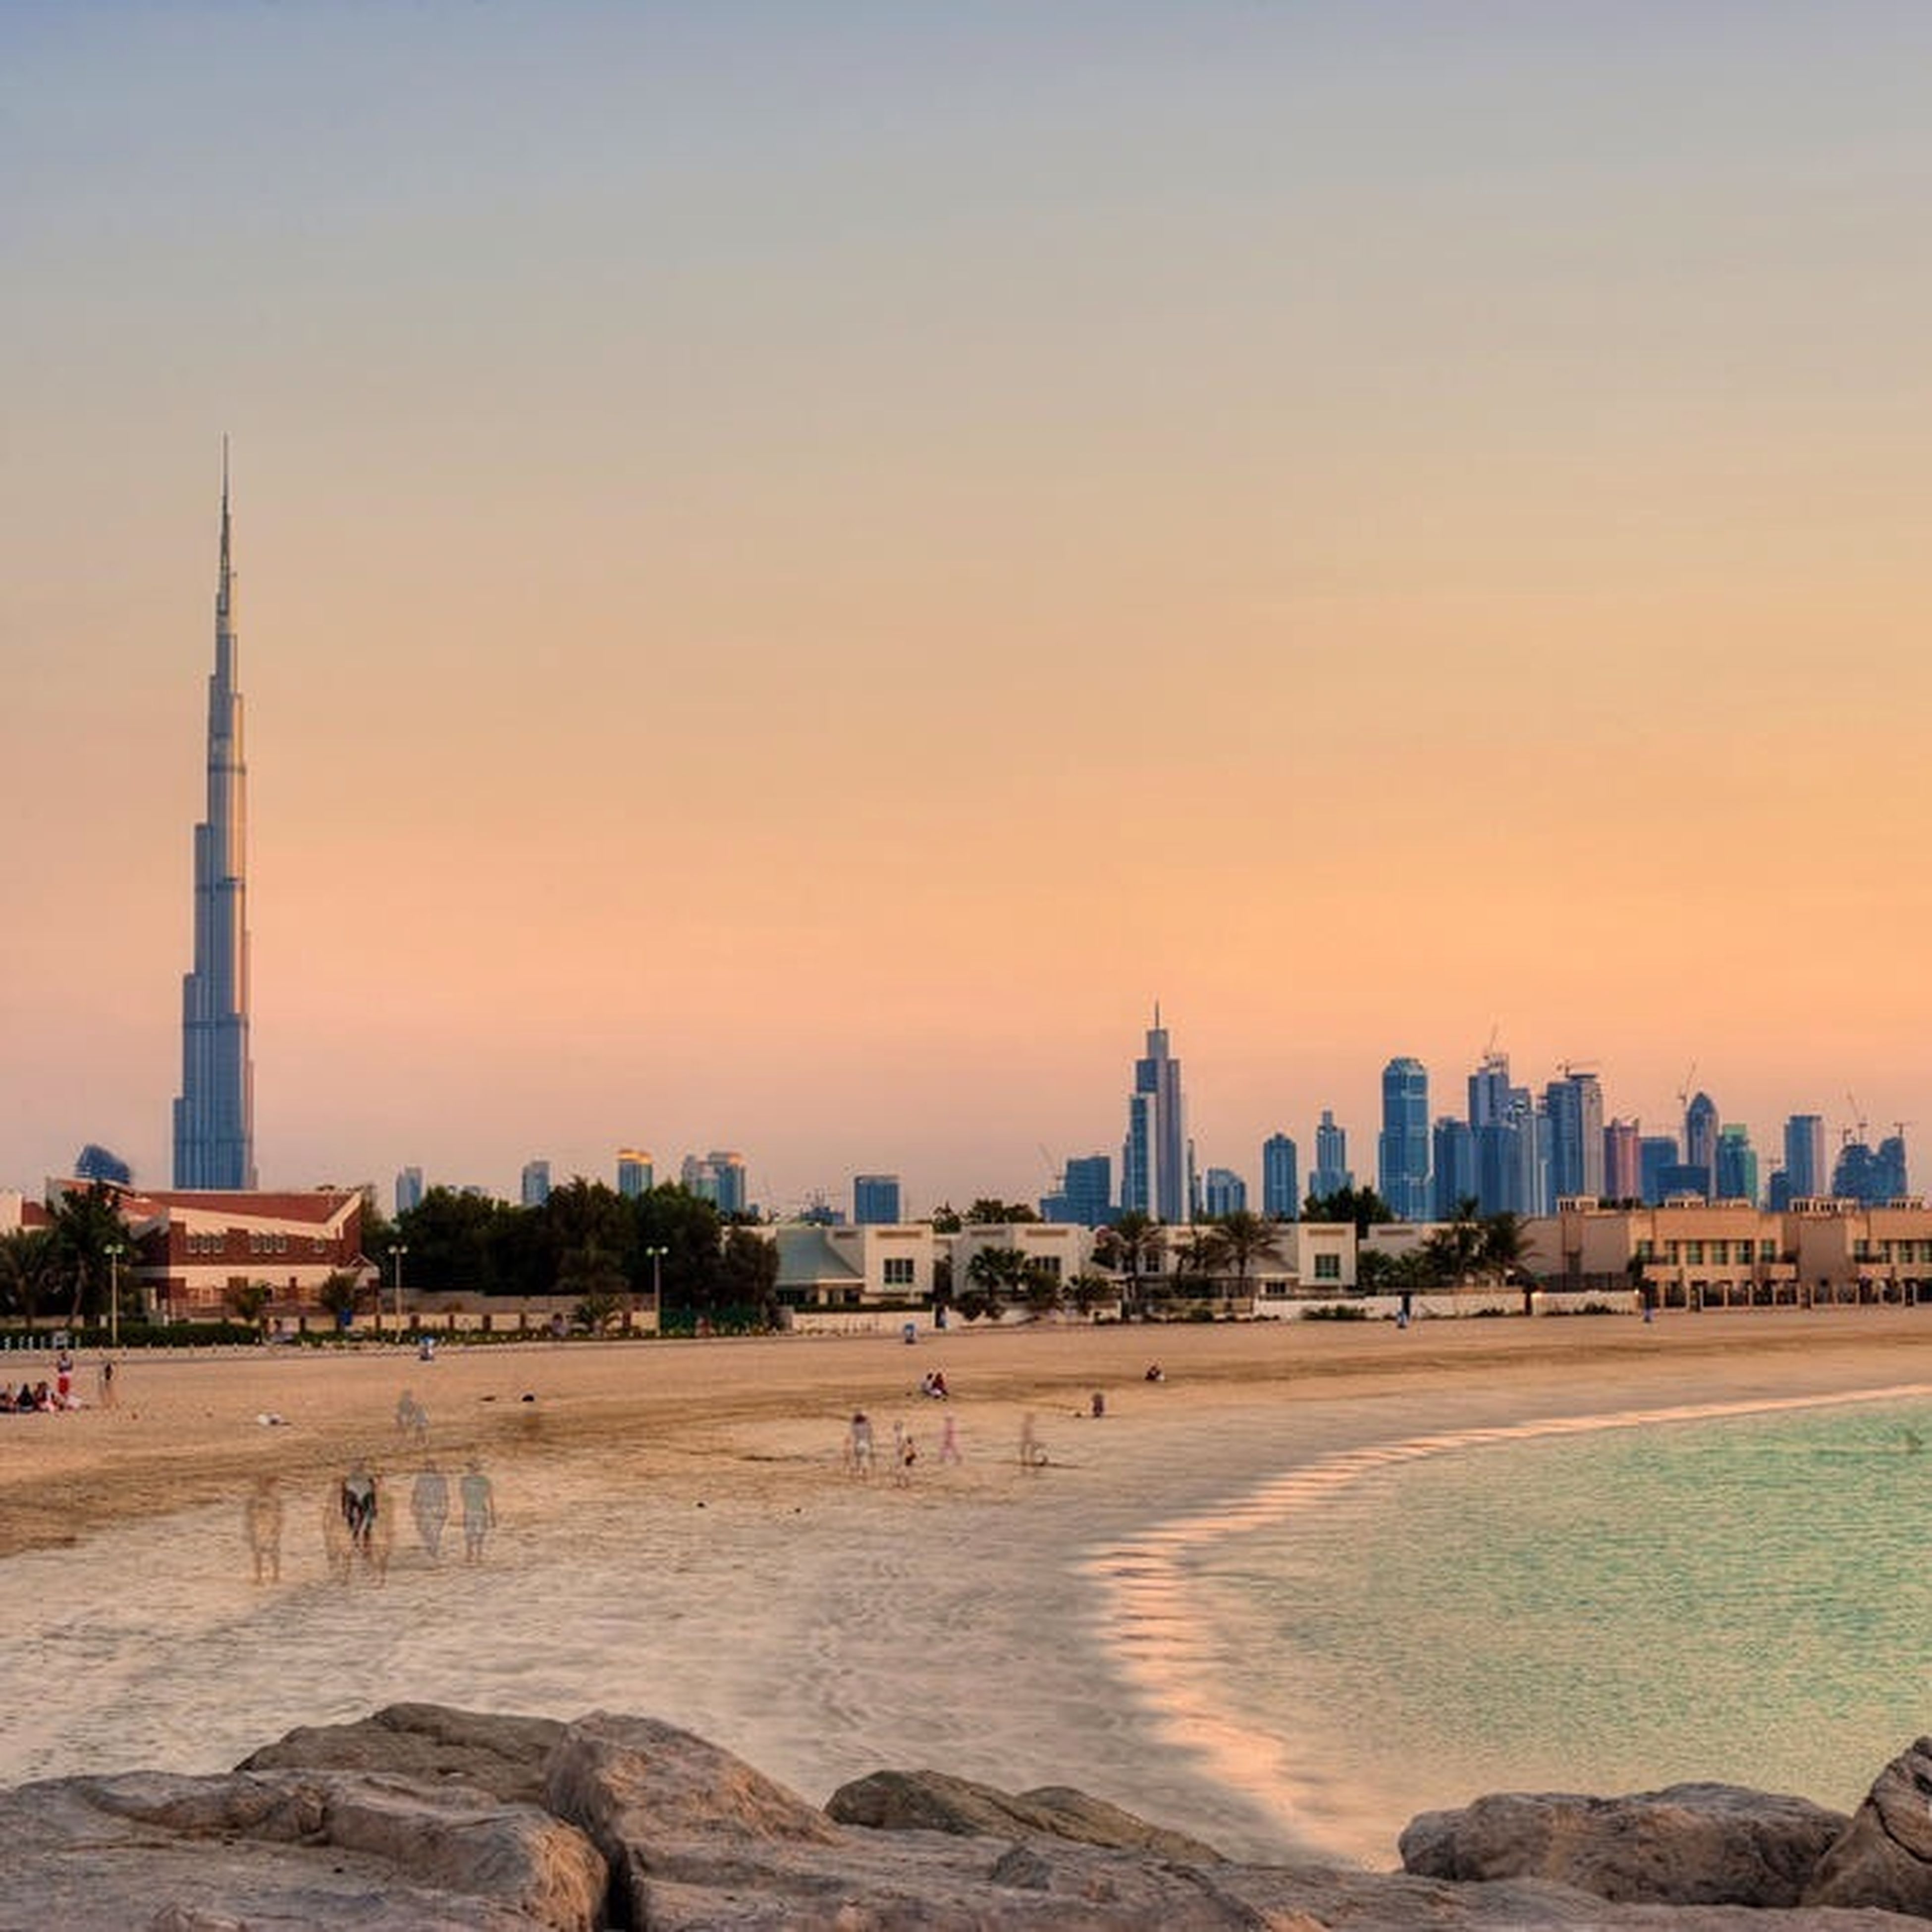 architecture, building exterior, built structure, city, tower, tall - high, famous place, international landmark, travel destinations, skyscraper, tourism, clear sky, capital cities, beach, cityscape, sunset, travel, sea, copy space, water